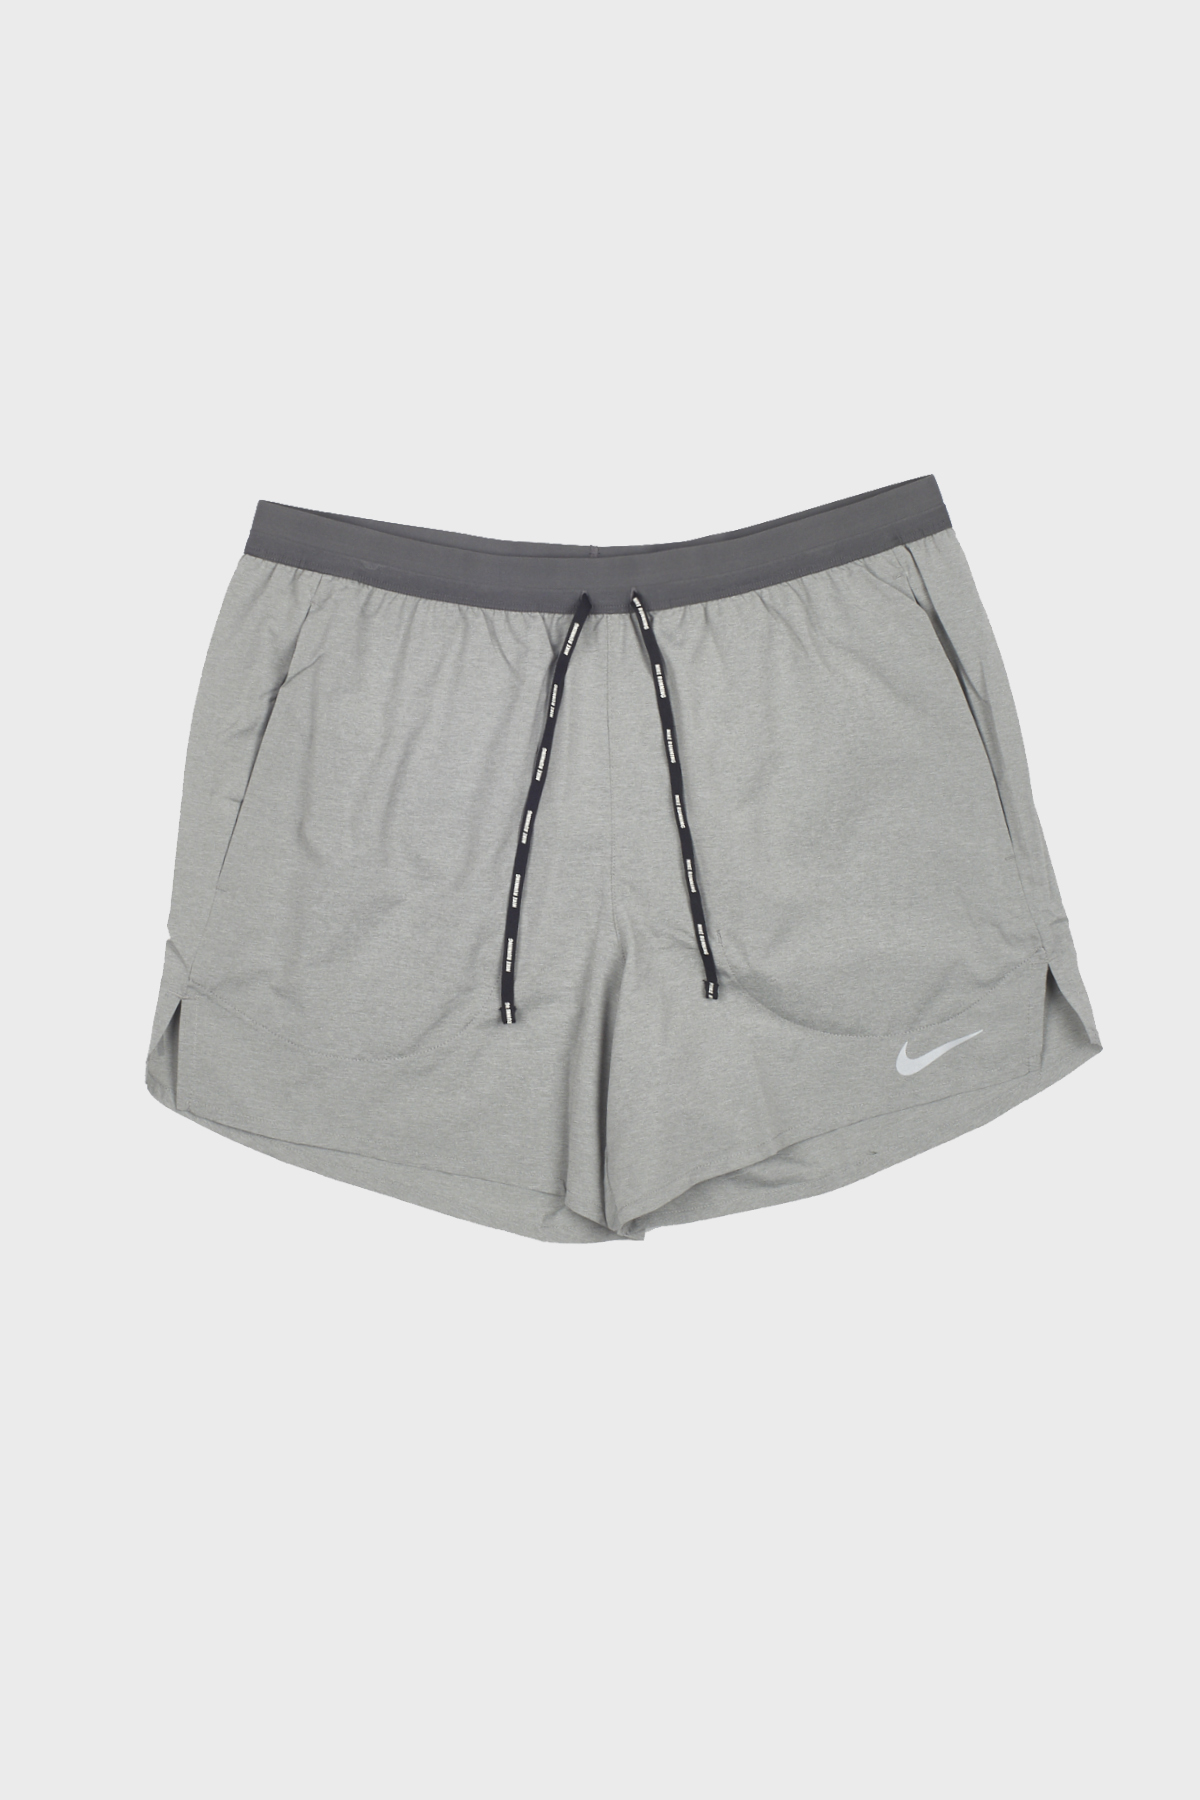 Nike - Short Flex Stride - Gris Fer